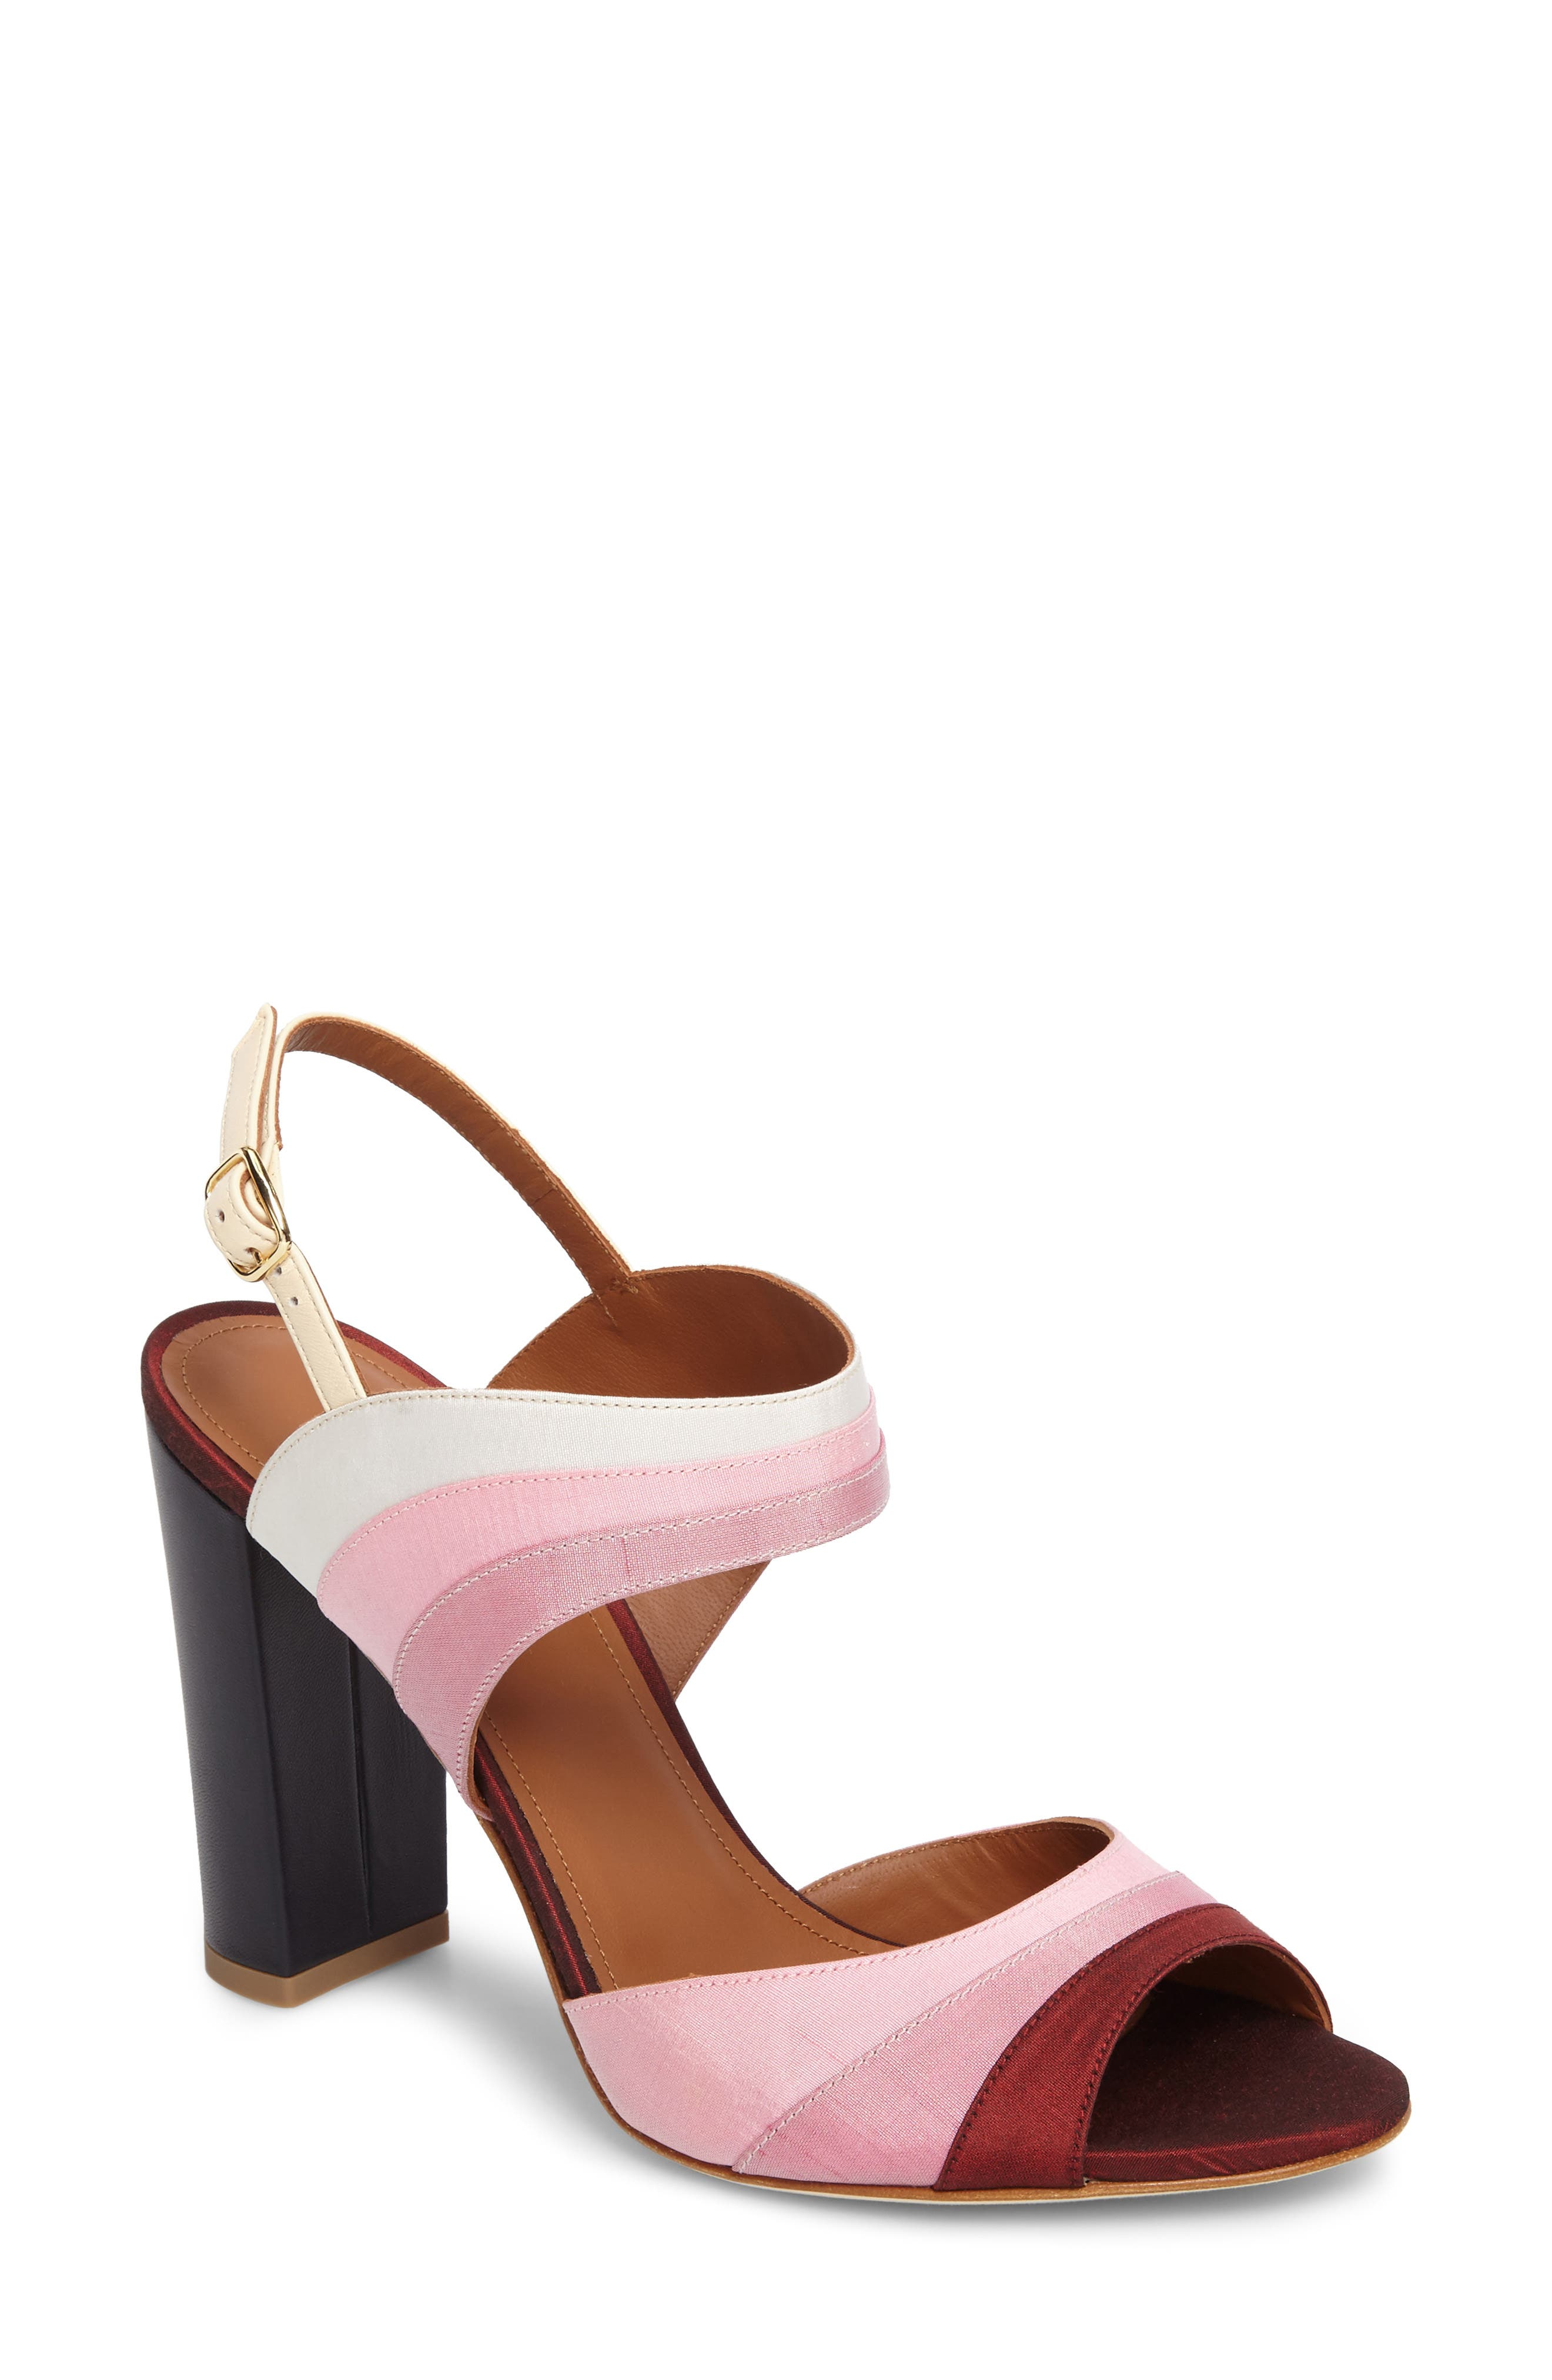 Anita Ombré Slingback Sandal,                             Main thumbnail 1, color,                             Peach/ Rose/ Berry/ Wine